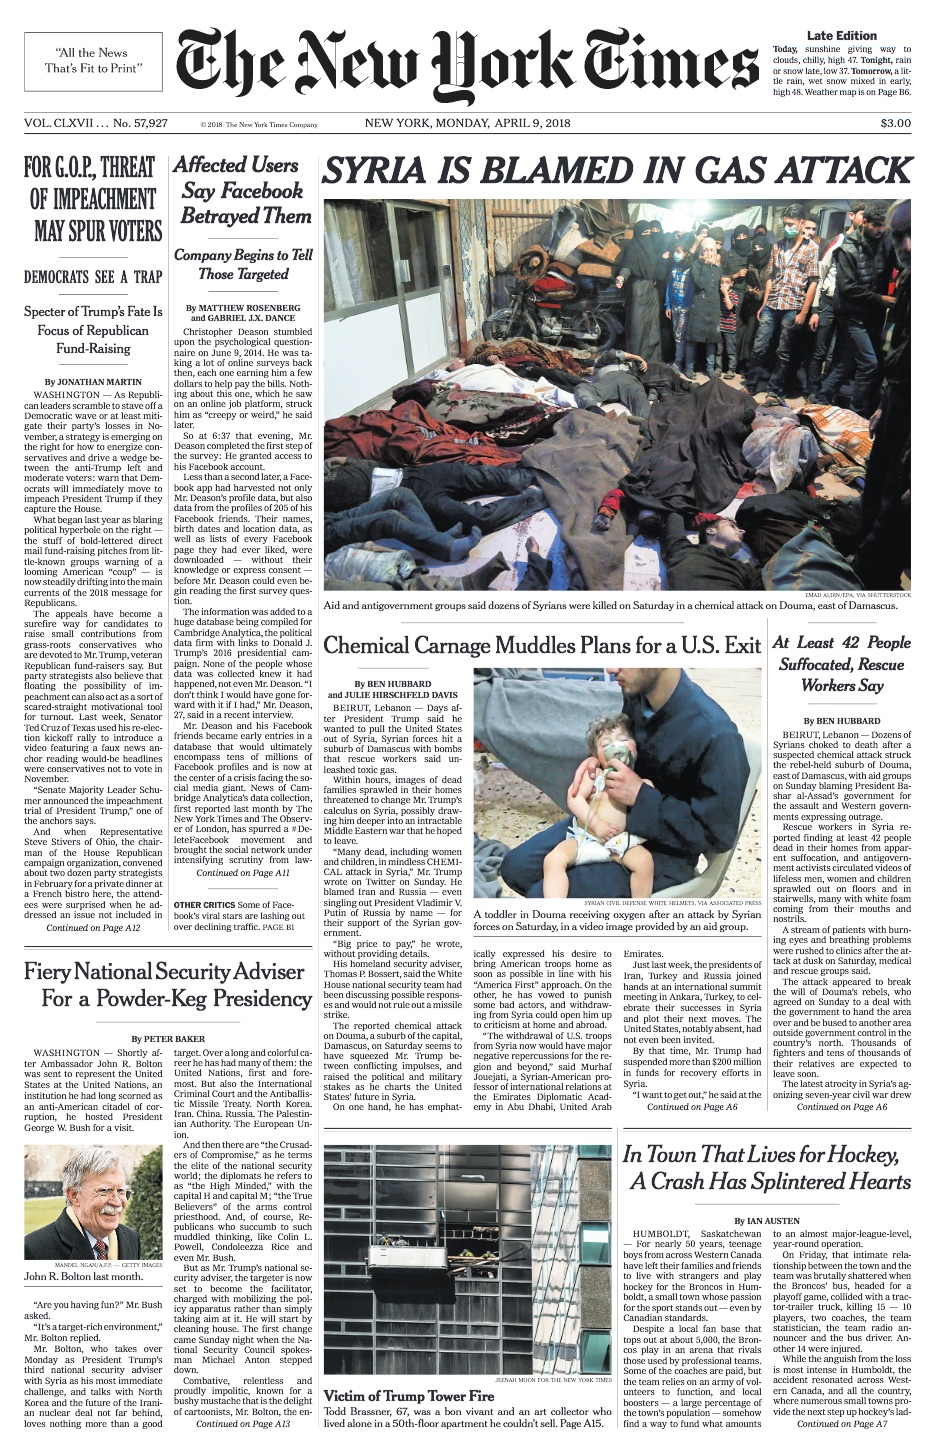 NYT_FrontPage_040918.jpg